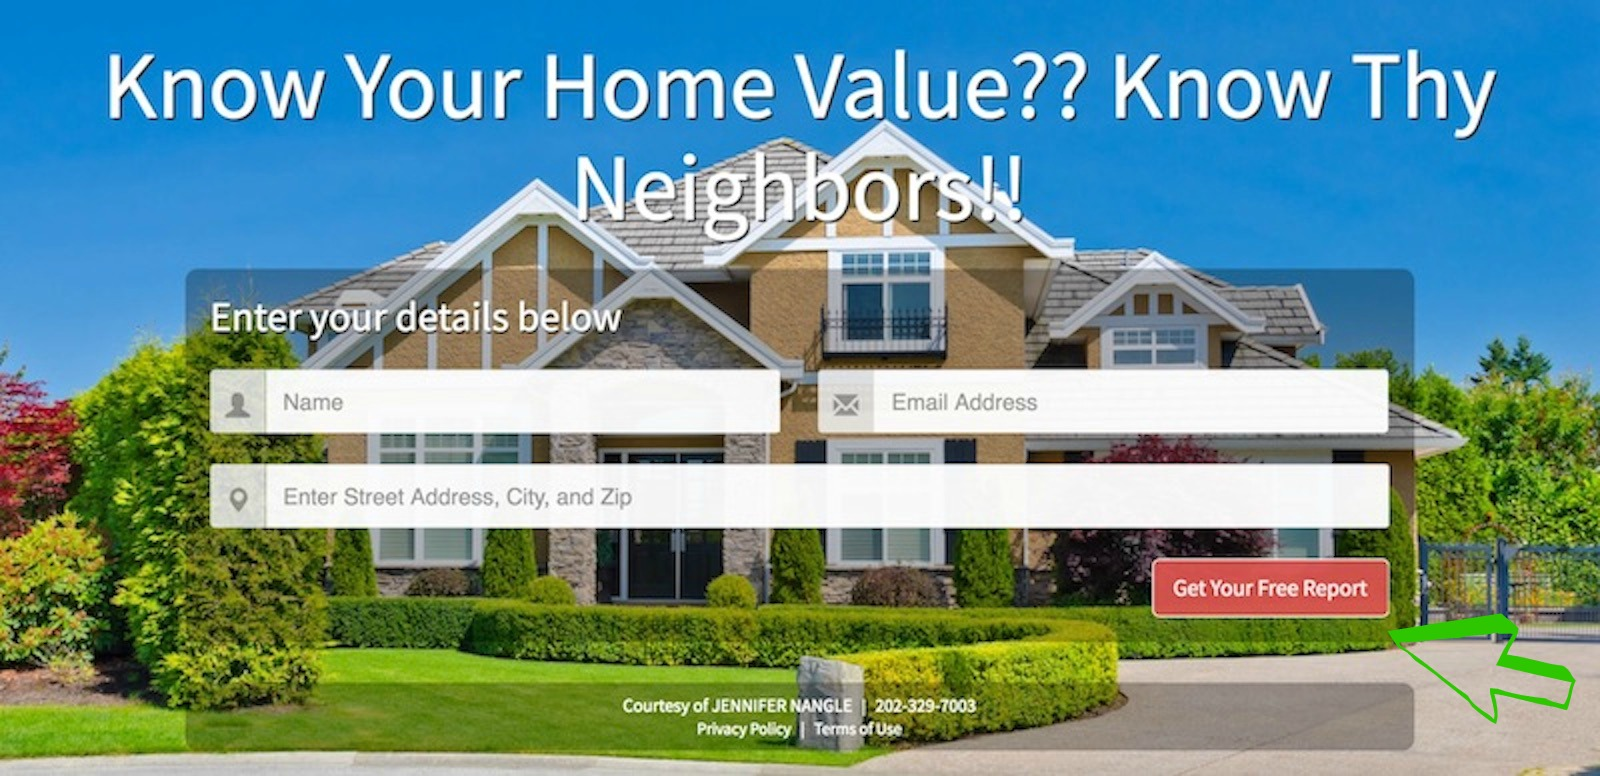 Click Here to Get Your Home Value